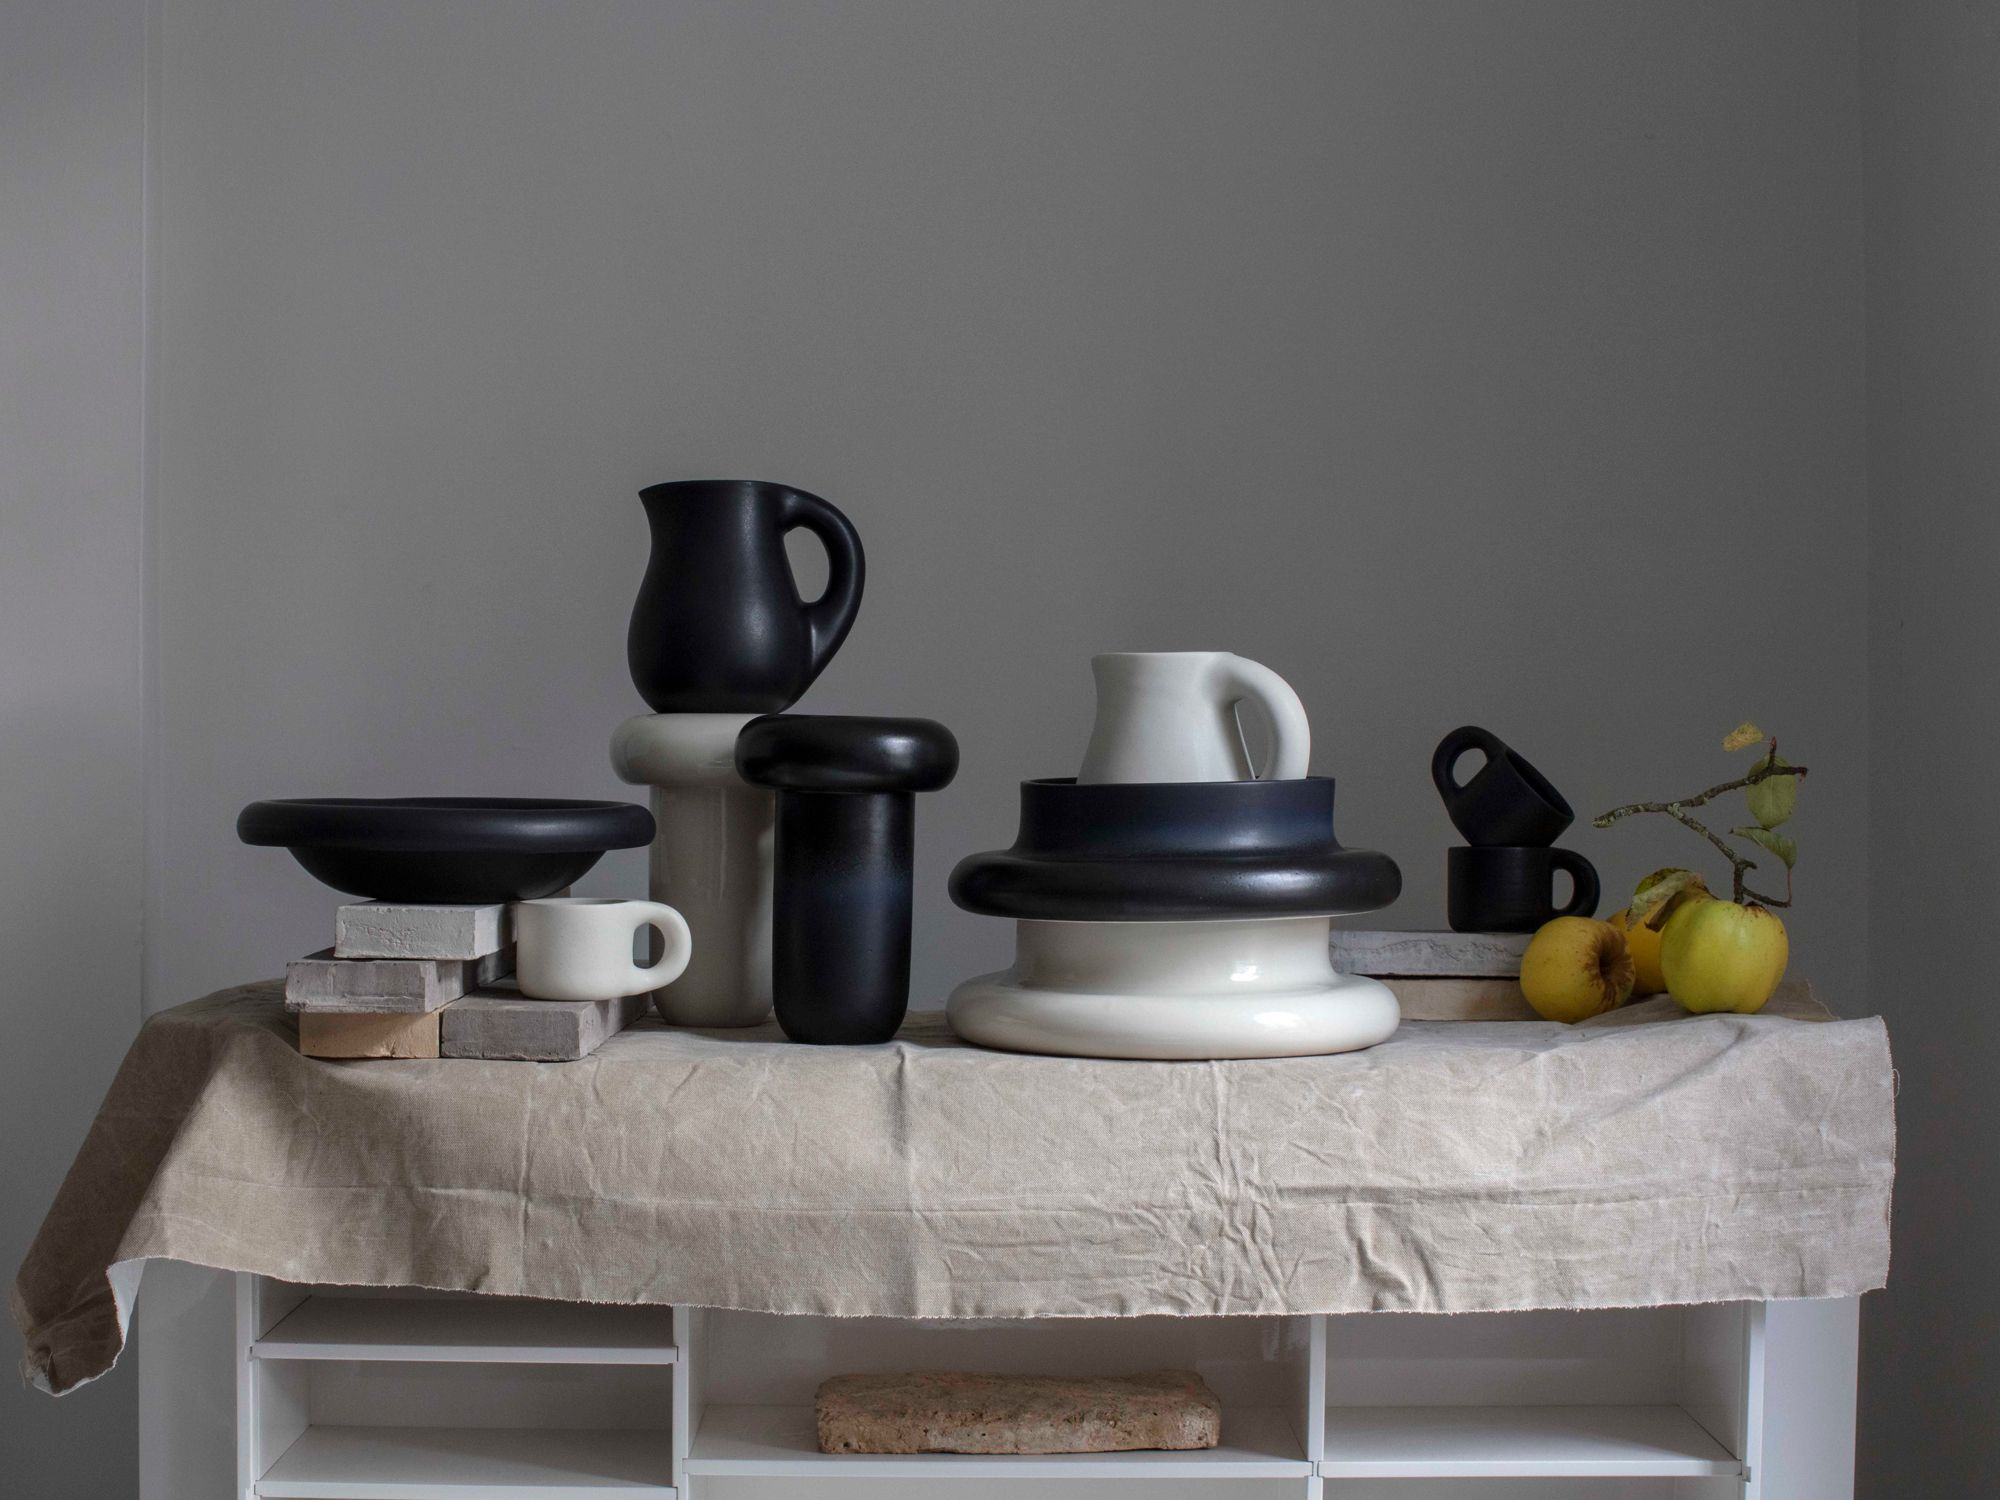 Dough and Plough collections by Faye Toogood